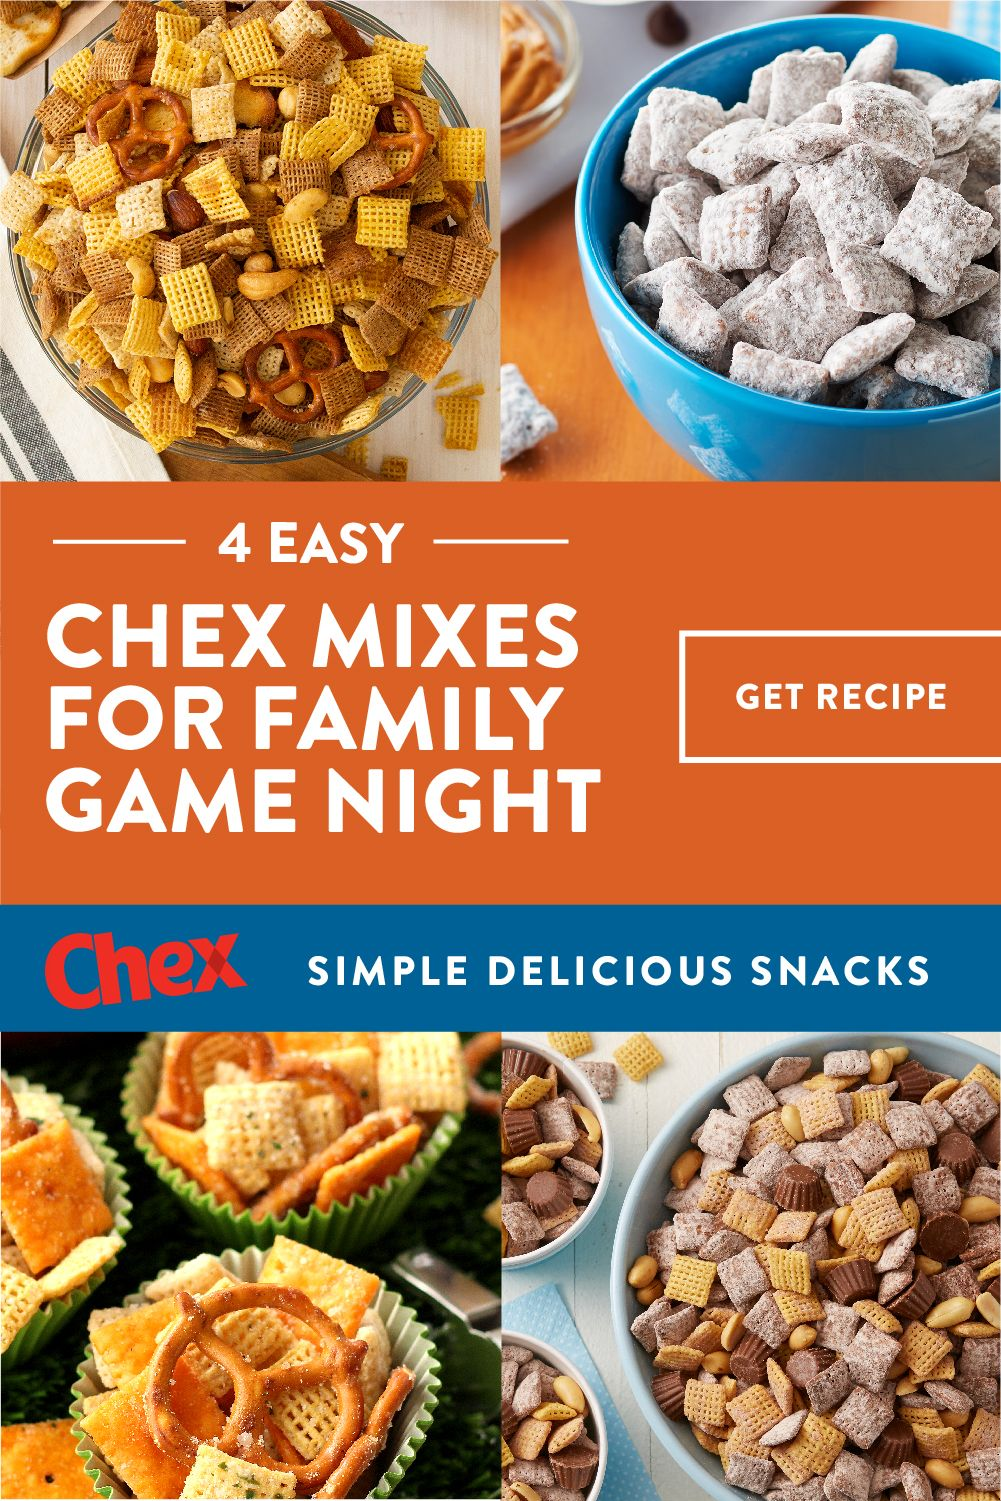 Chex Cereal And Chex Products Chex Com Chex Mix Cheesy Ranch Chex Mix Chex Mix Recipes